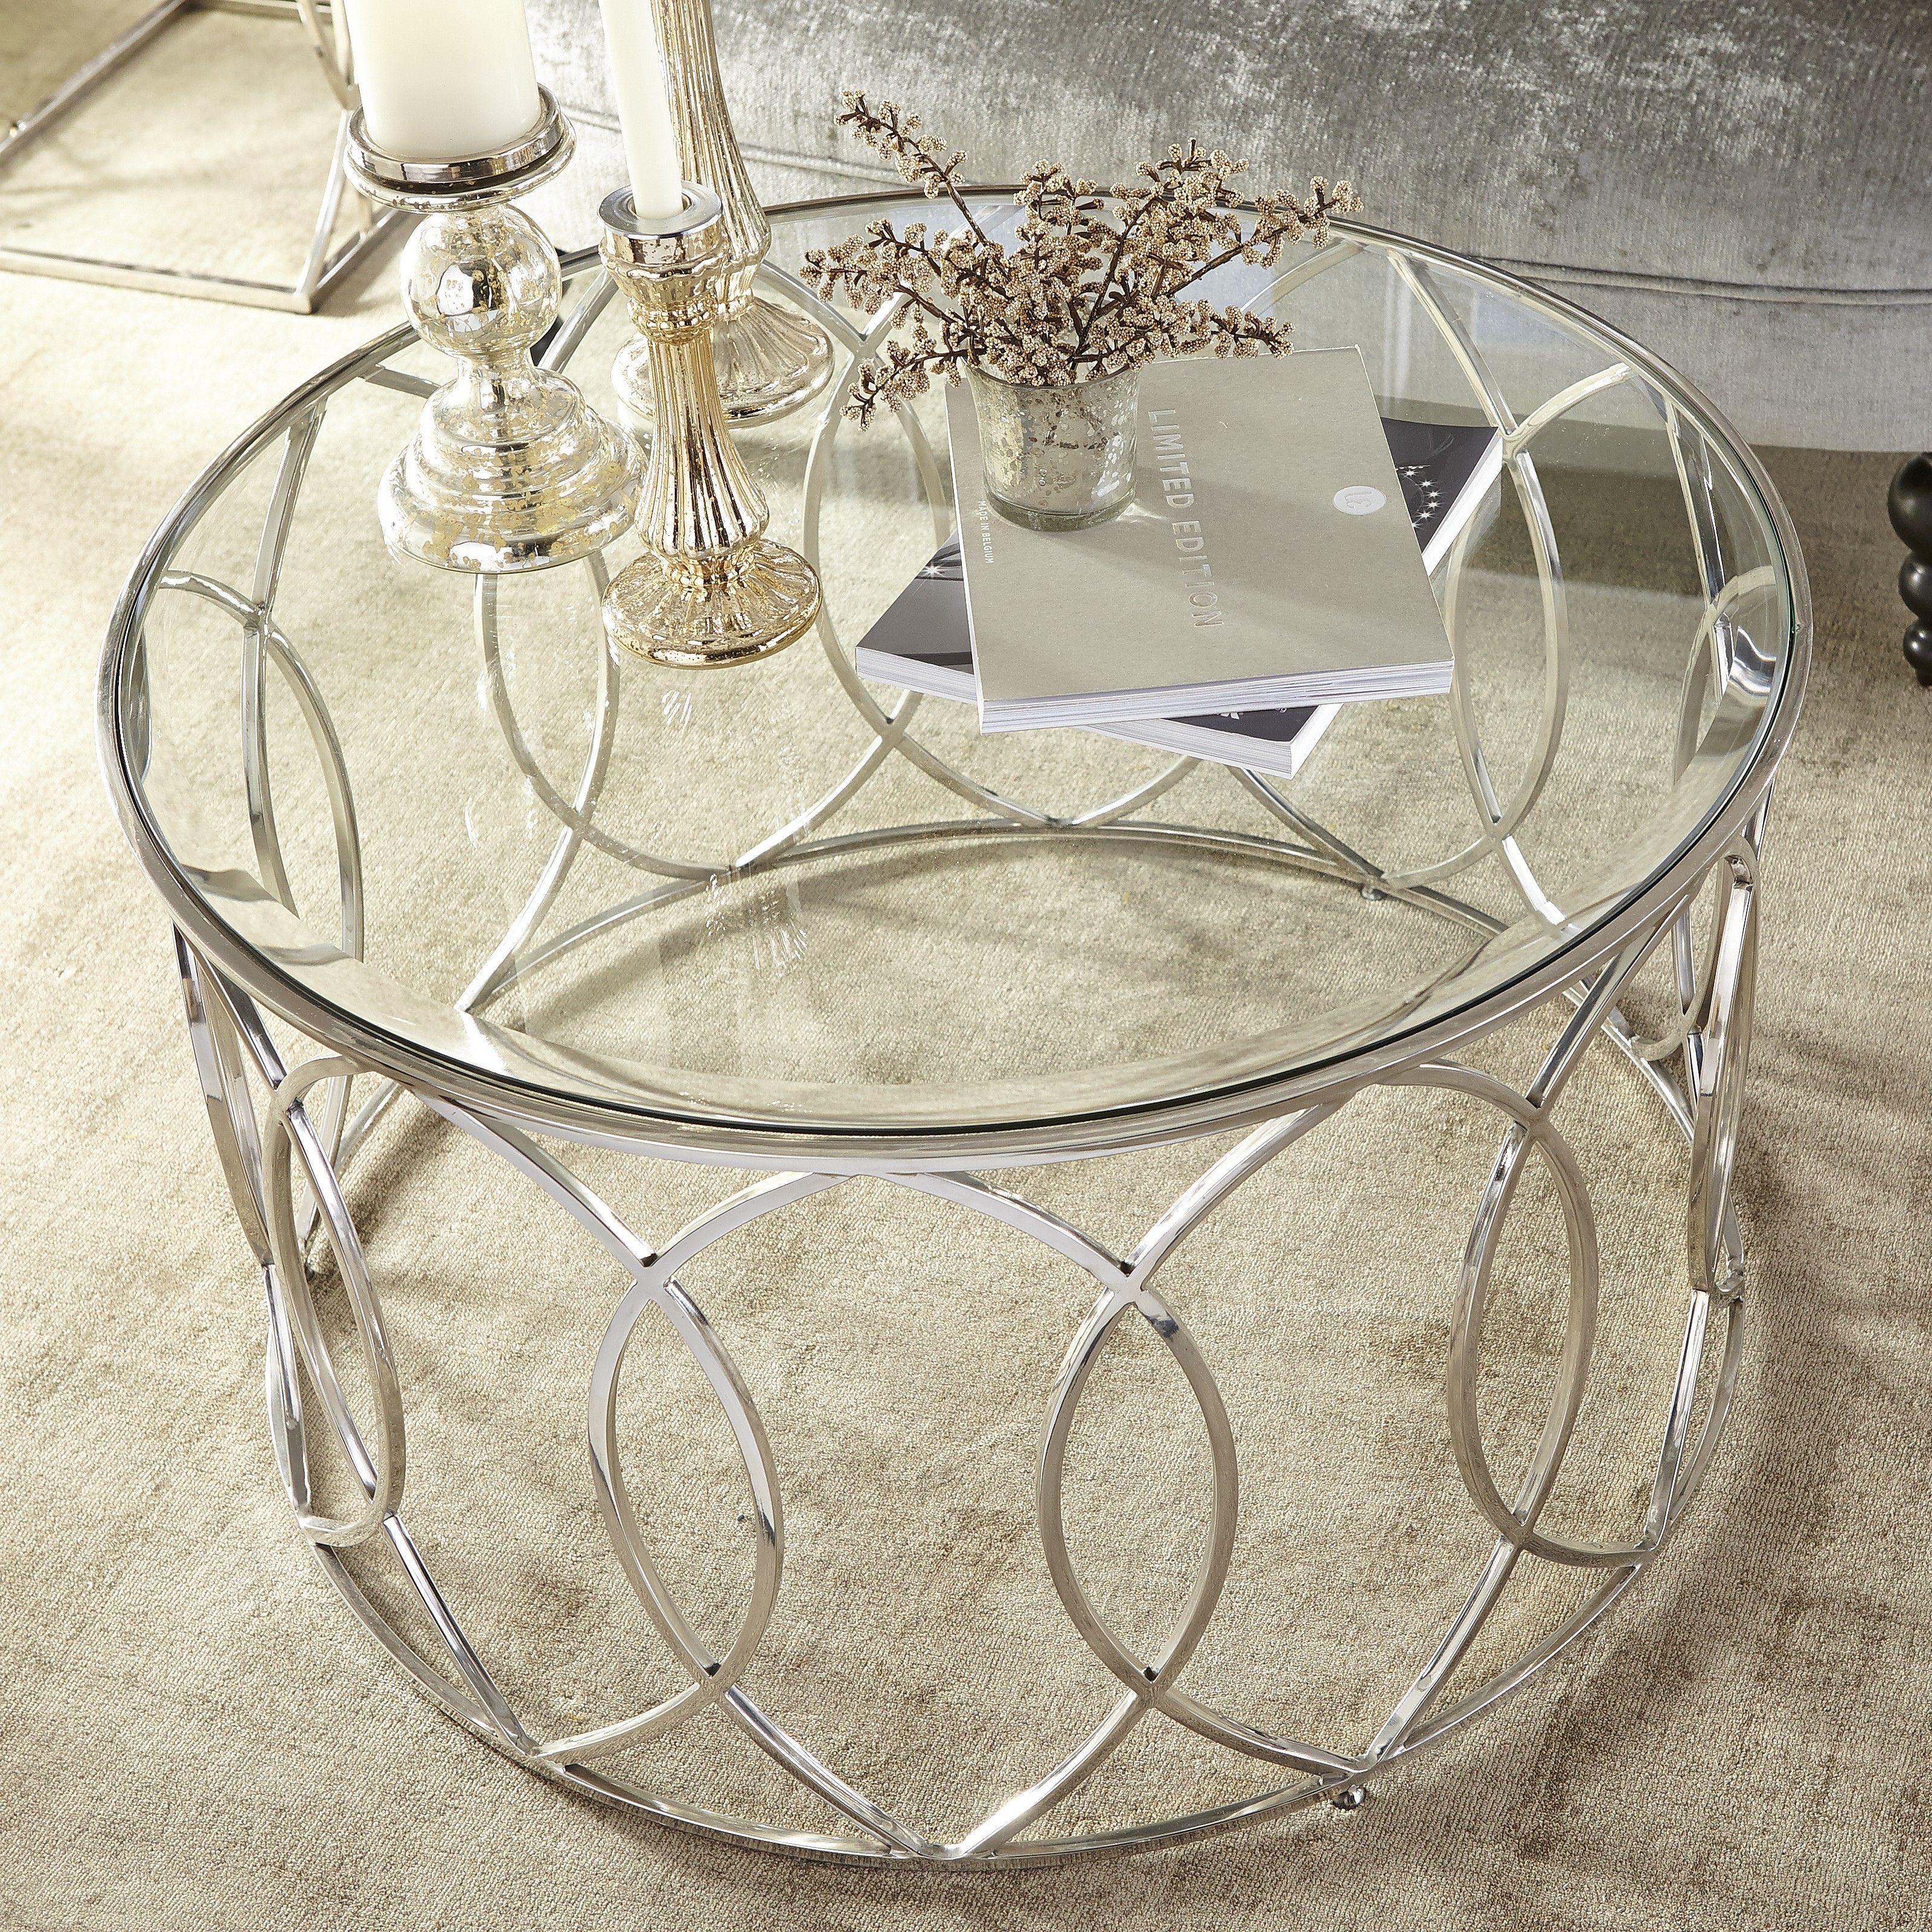 Elana Silver Stainless Steel Round Coffee Table Stainless Steel